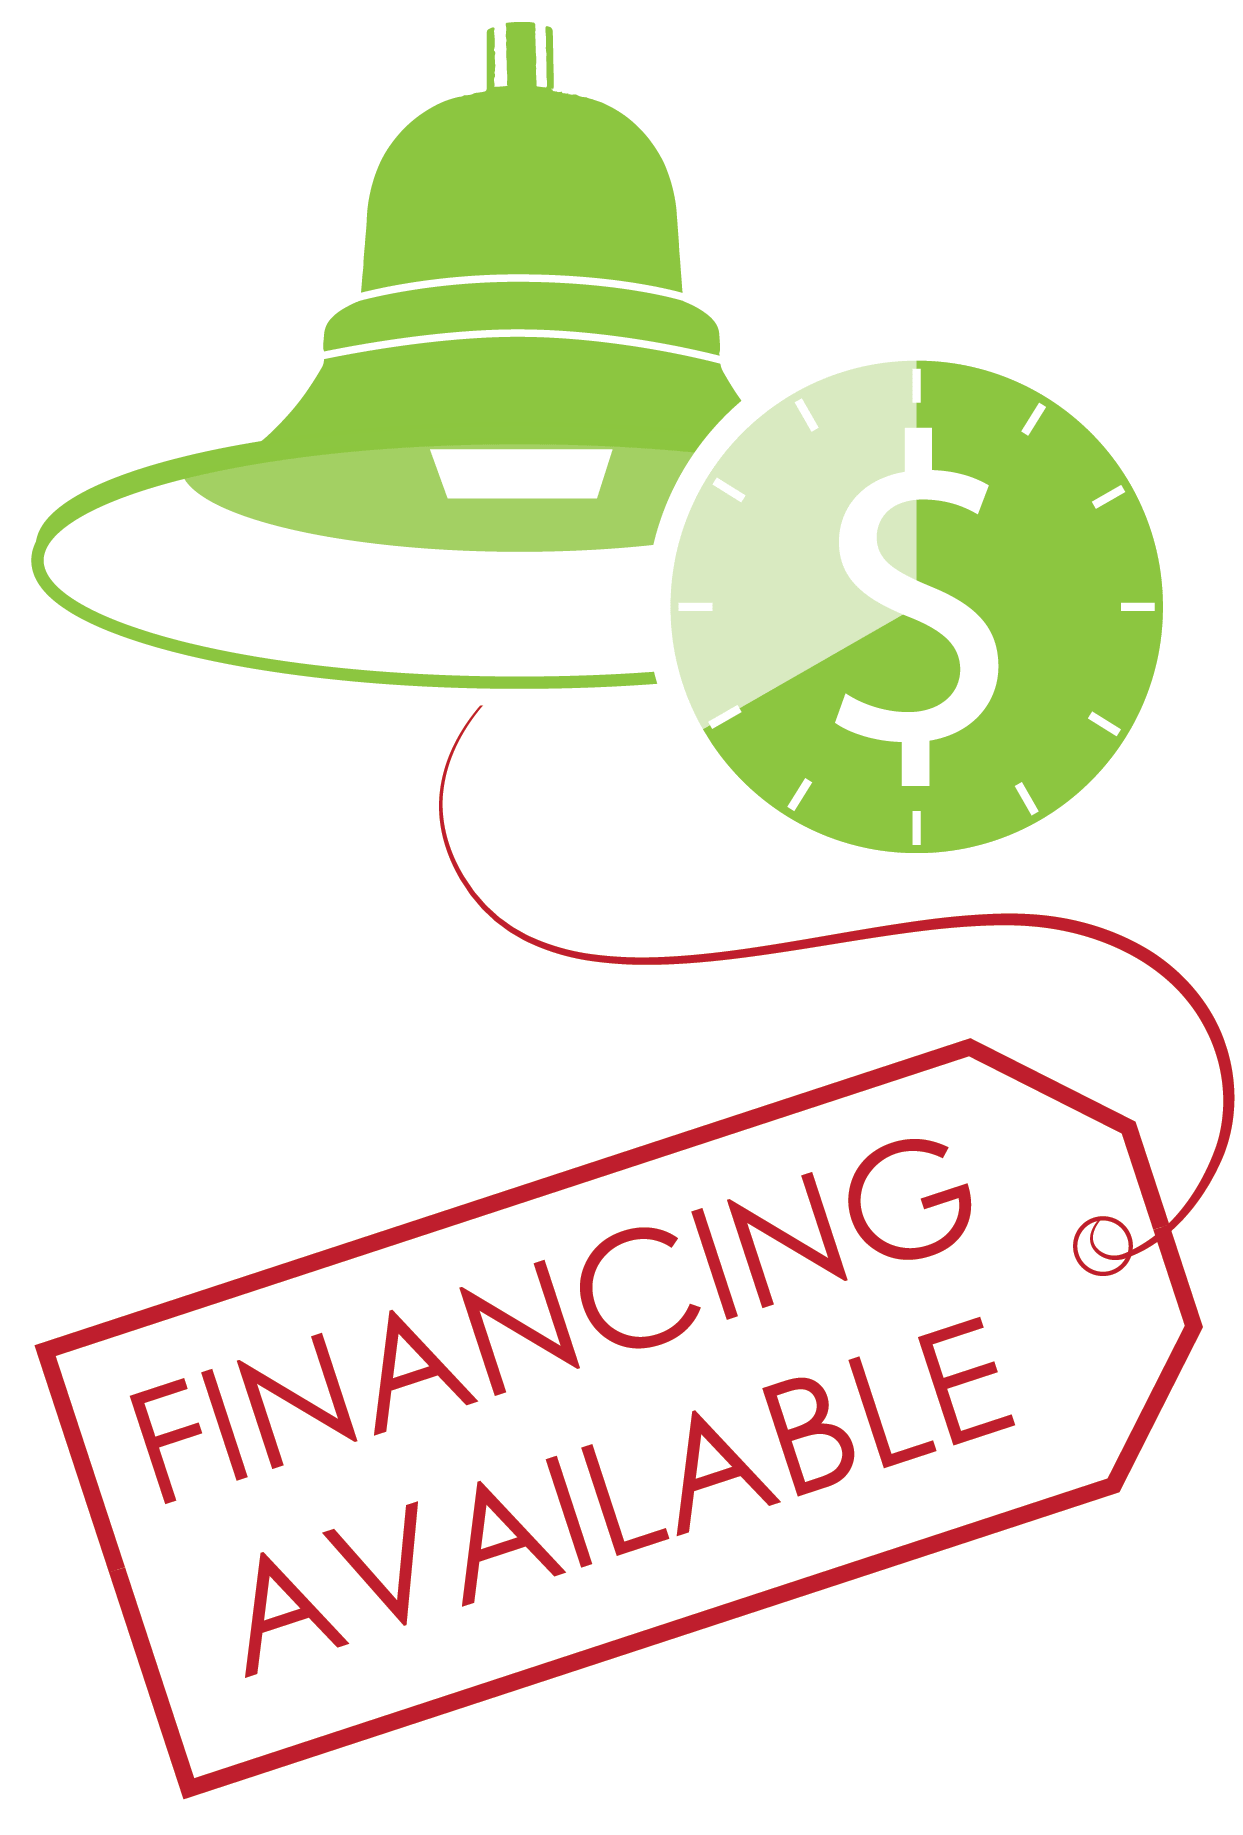 baner - Greenshine financing available